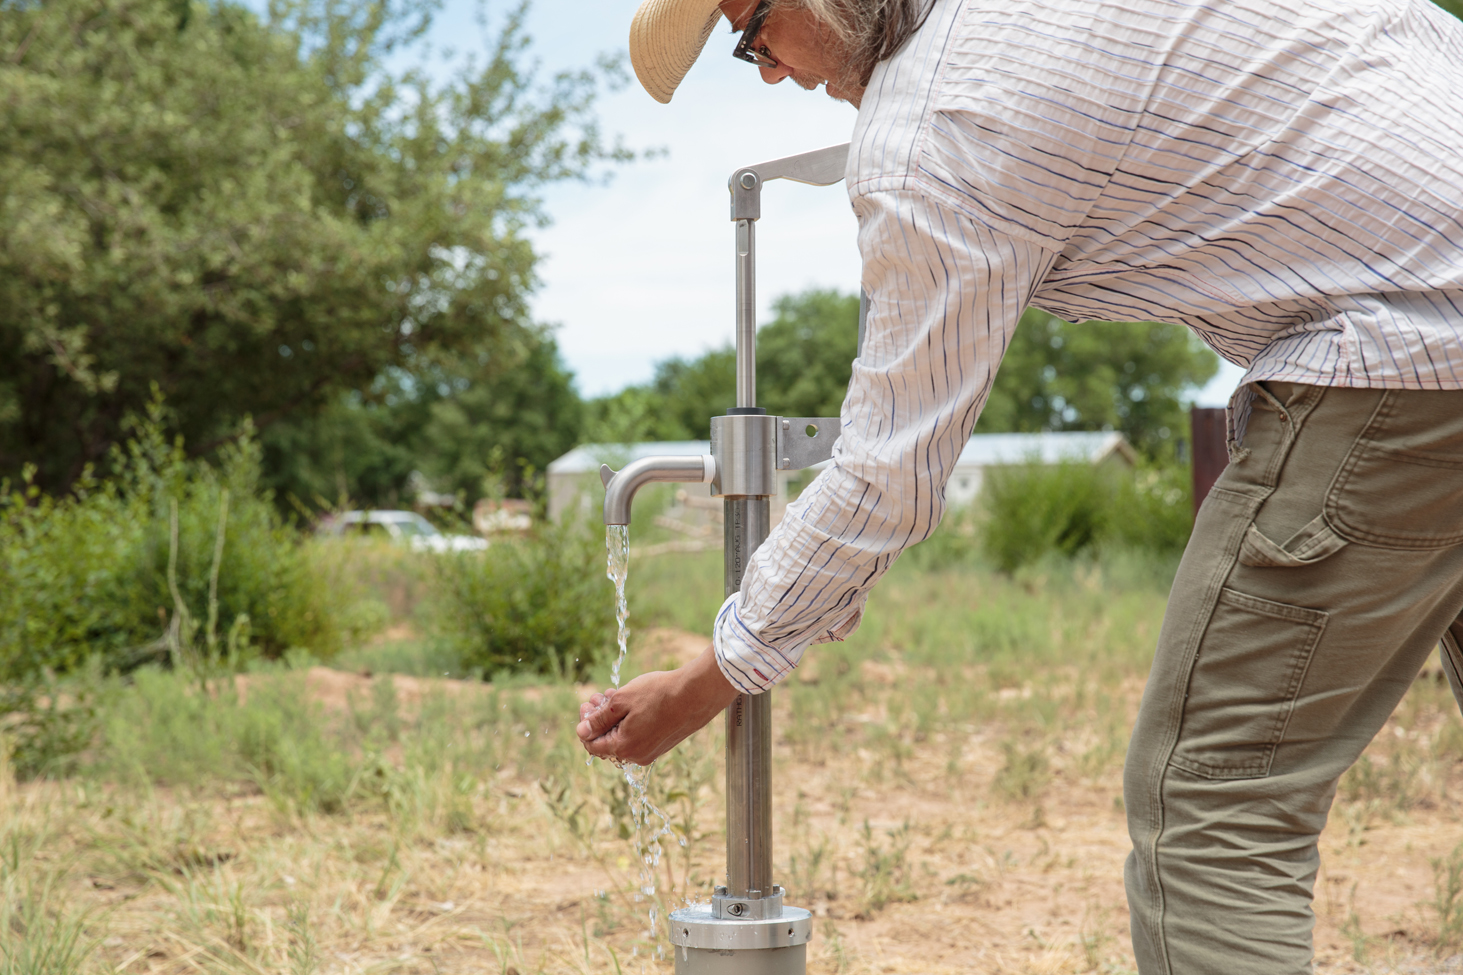 A person pumps water from a stainless-steel pump.